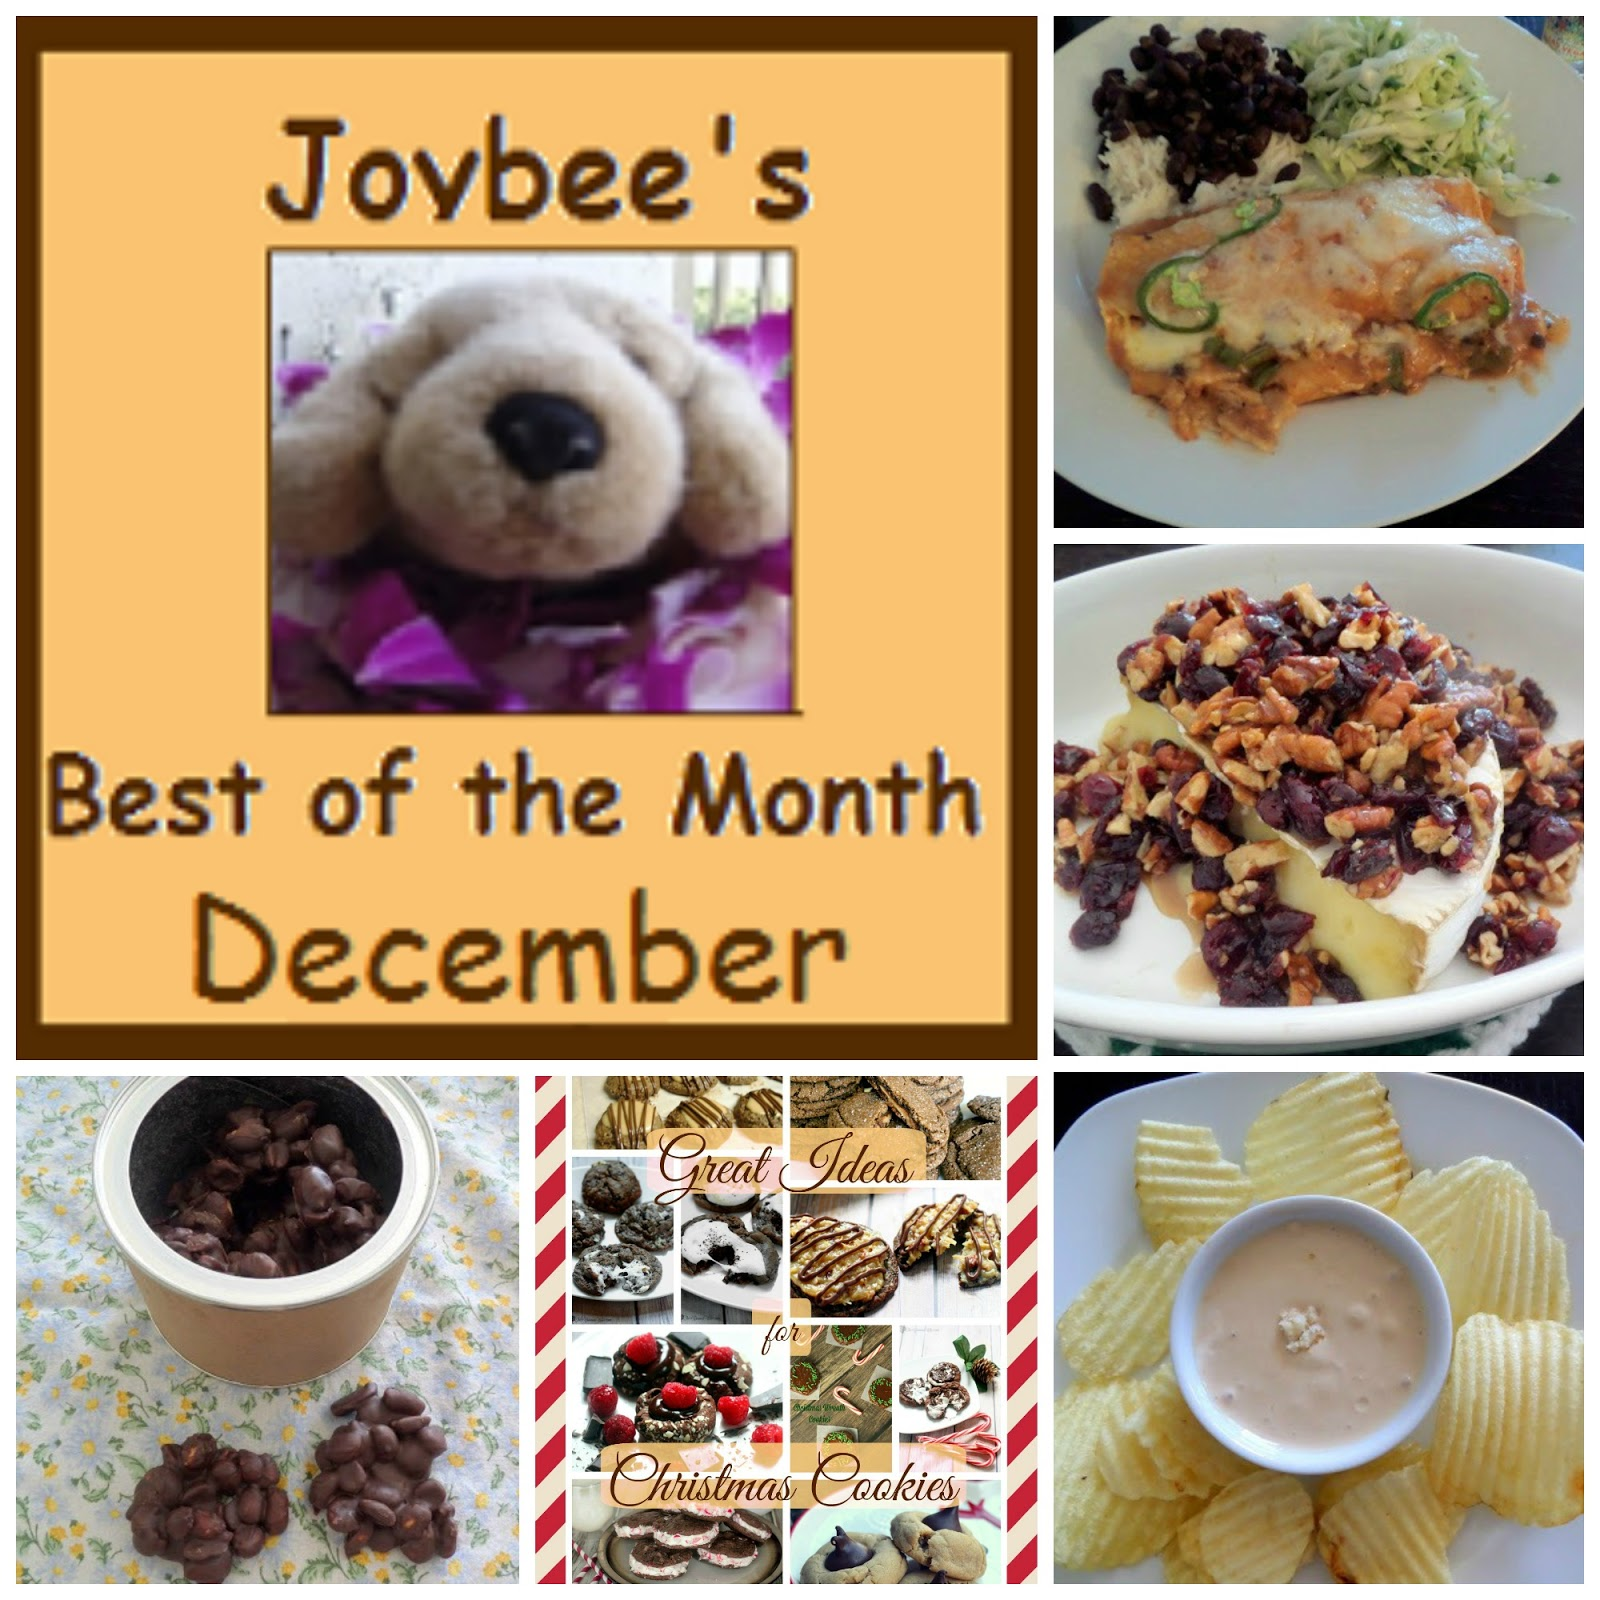 Best of the Month December 2014:  A recap of my most popular posts from December 2014